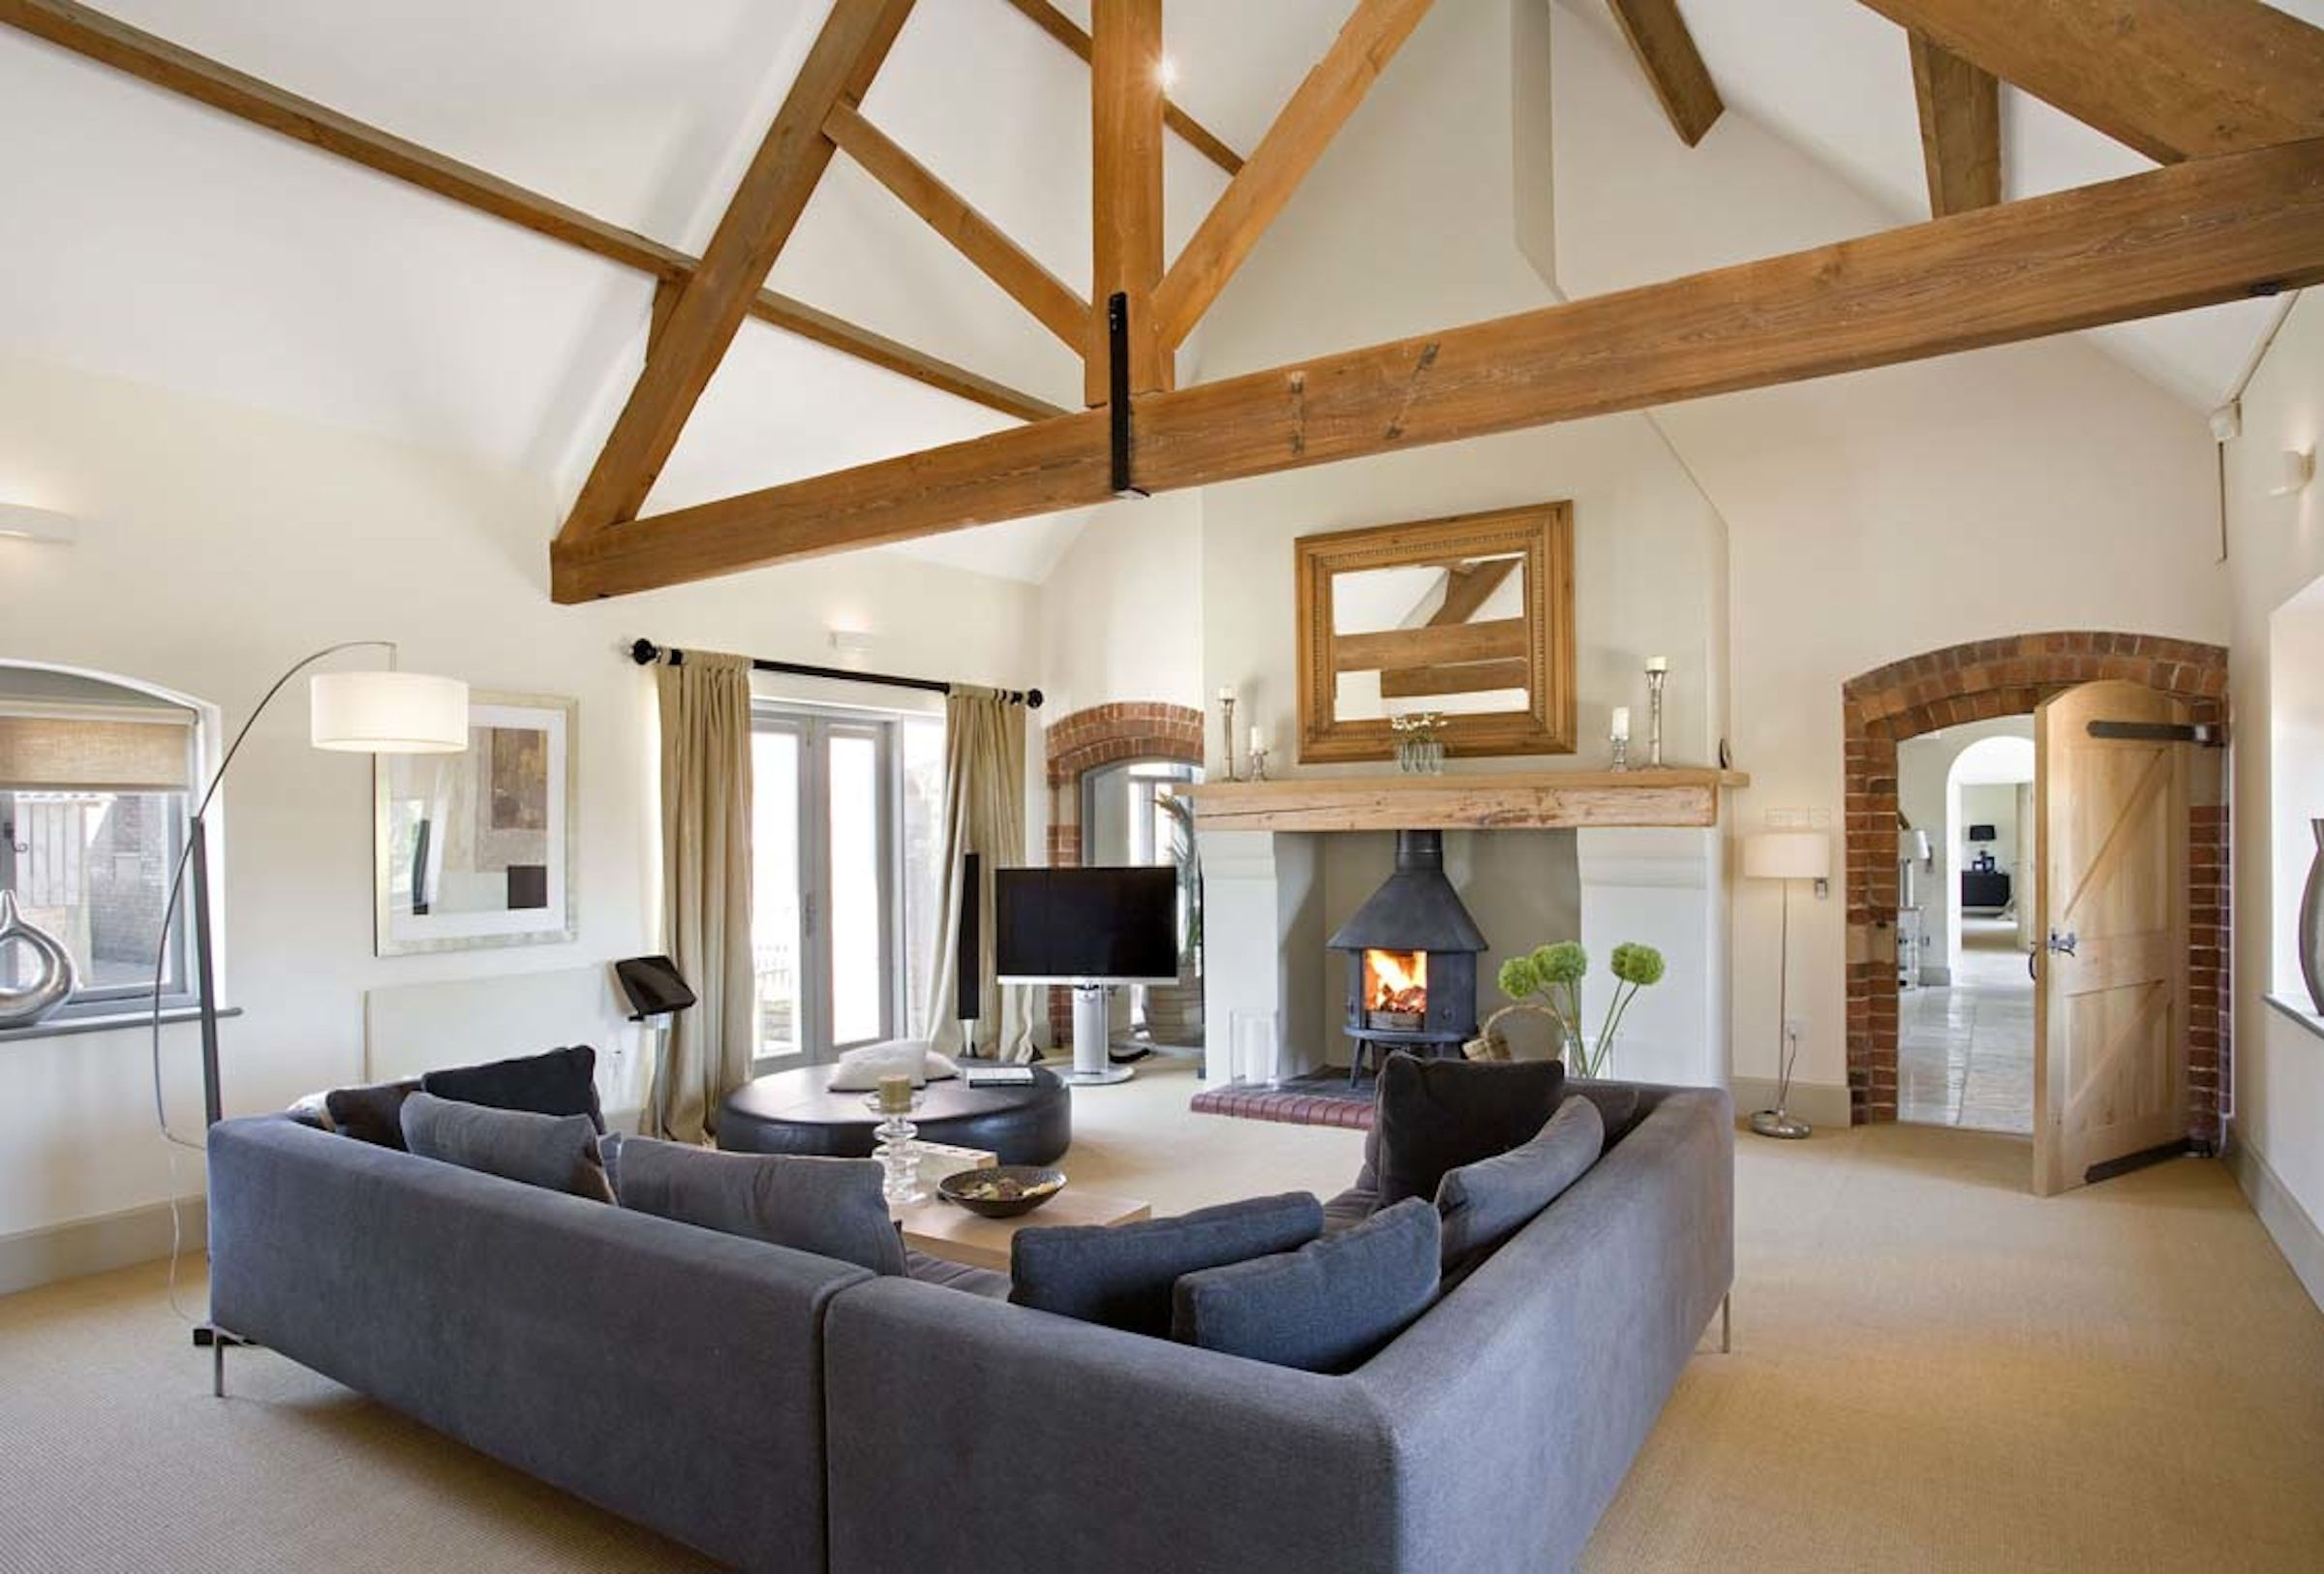 Barn Conversion Locations For Photoshoots Tv And Film Modern Barn Interior Barn Interior Barn Conversion Interiors